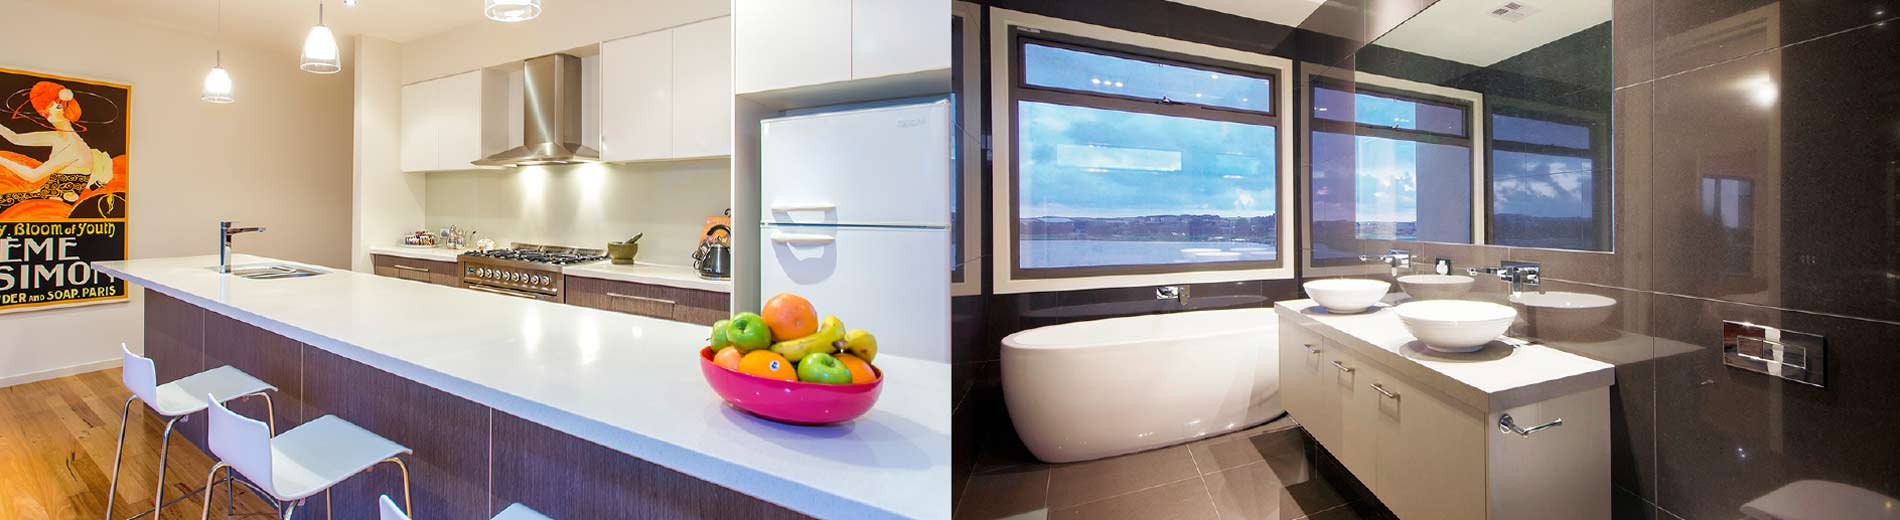 kitchens geelong your custom cabinets